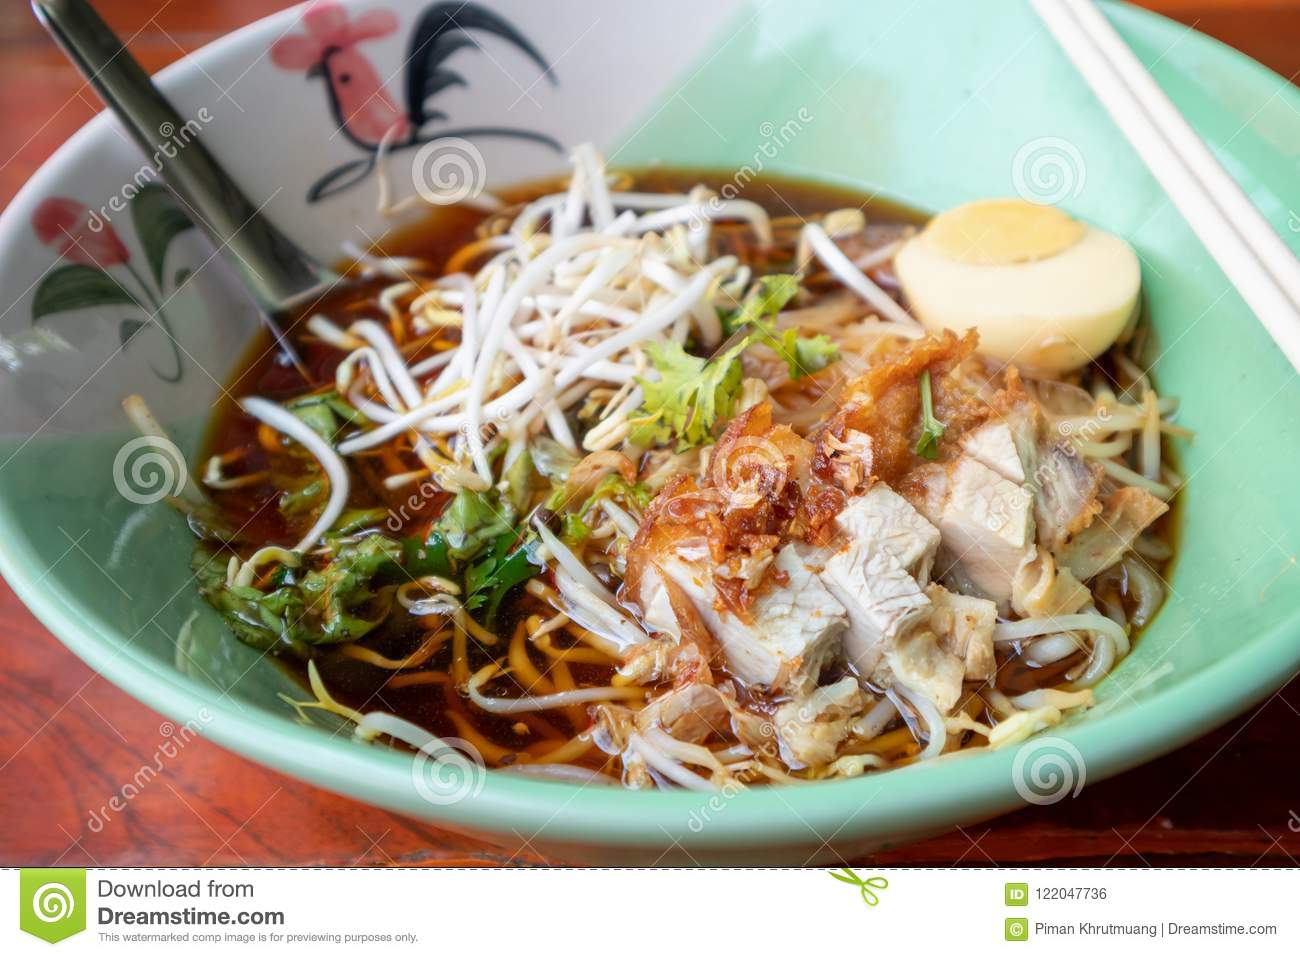 Crispy Pork Noodles With Egg In Bowl Stock Photo - Image of meal